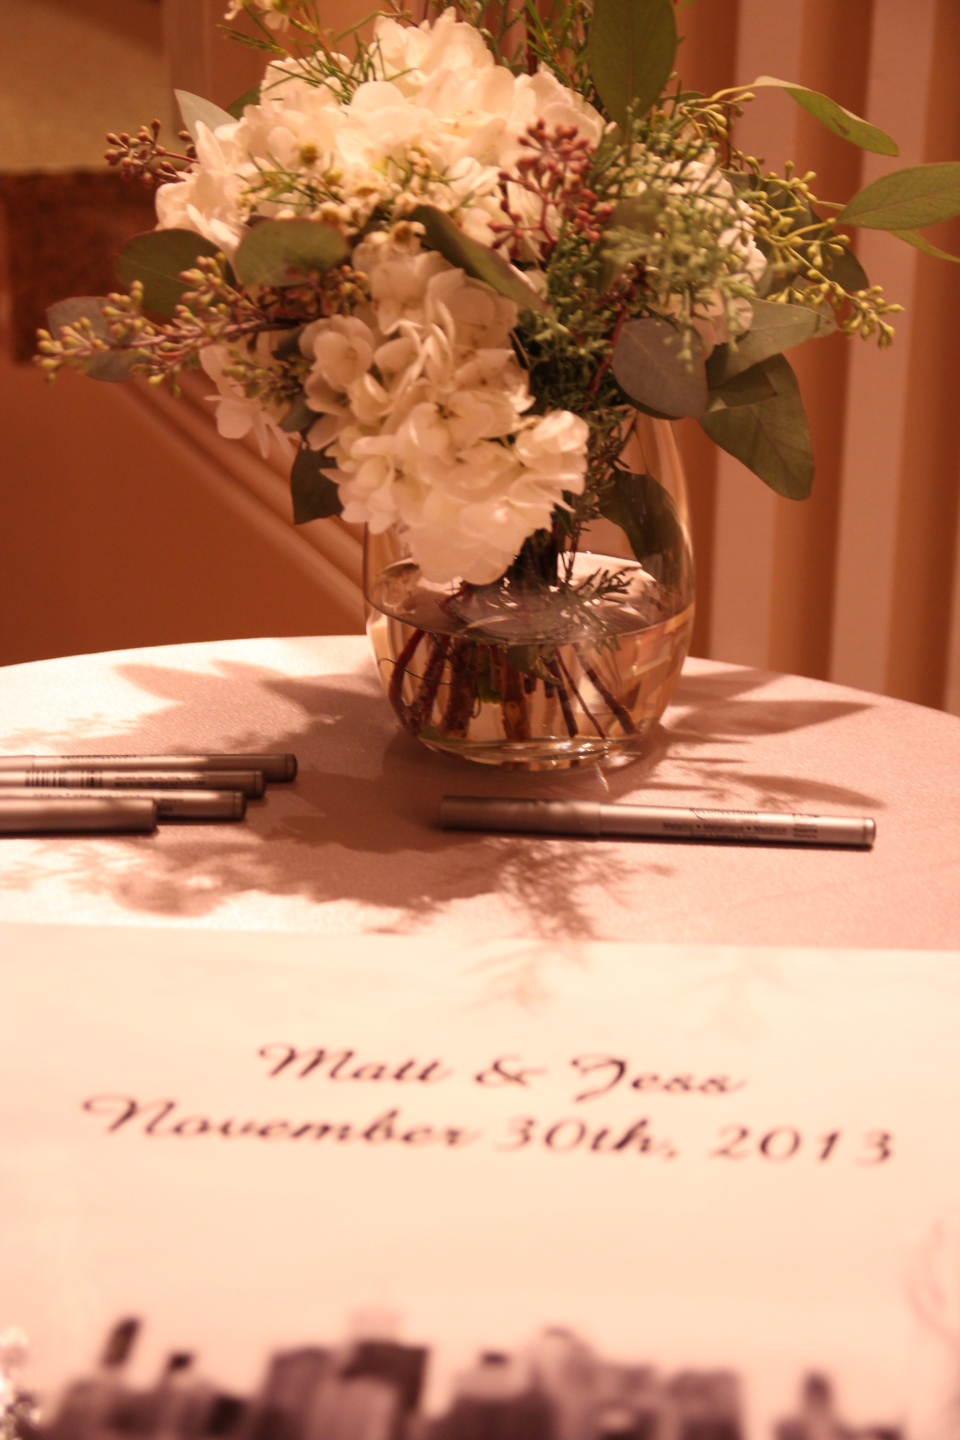 Aisle flowers make a reappearance at the reception!